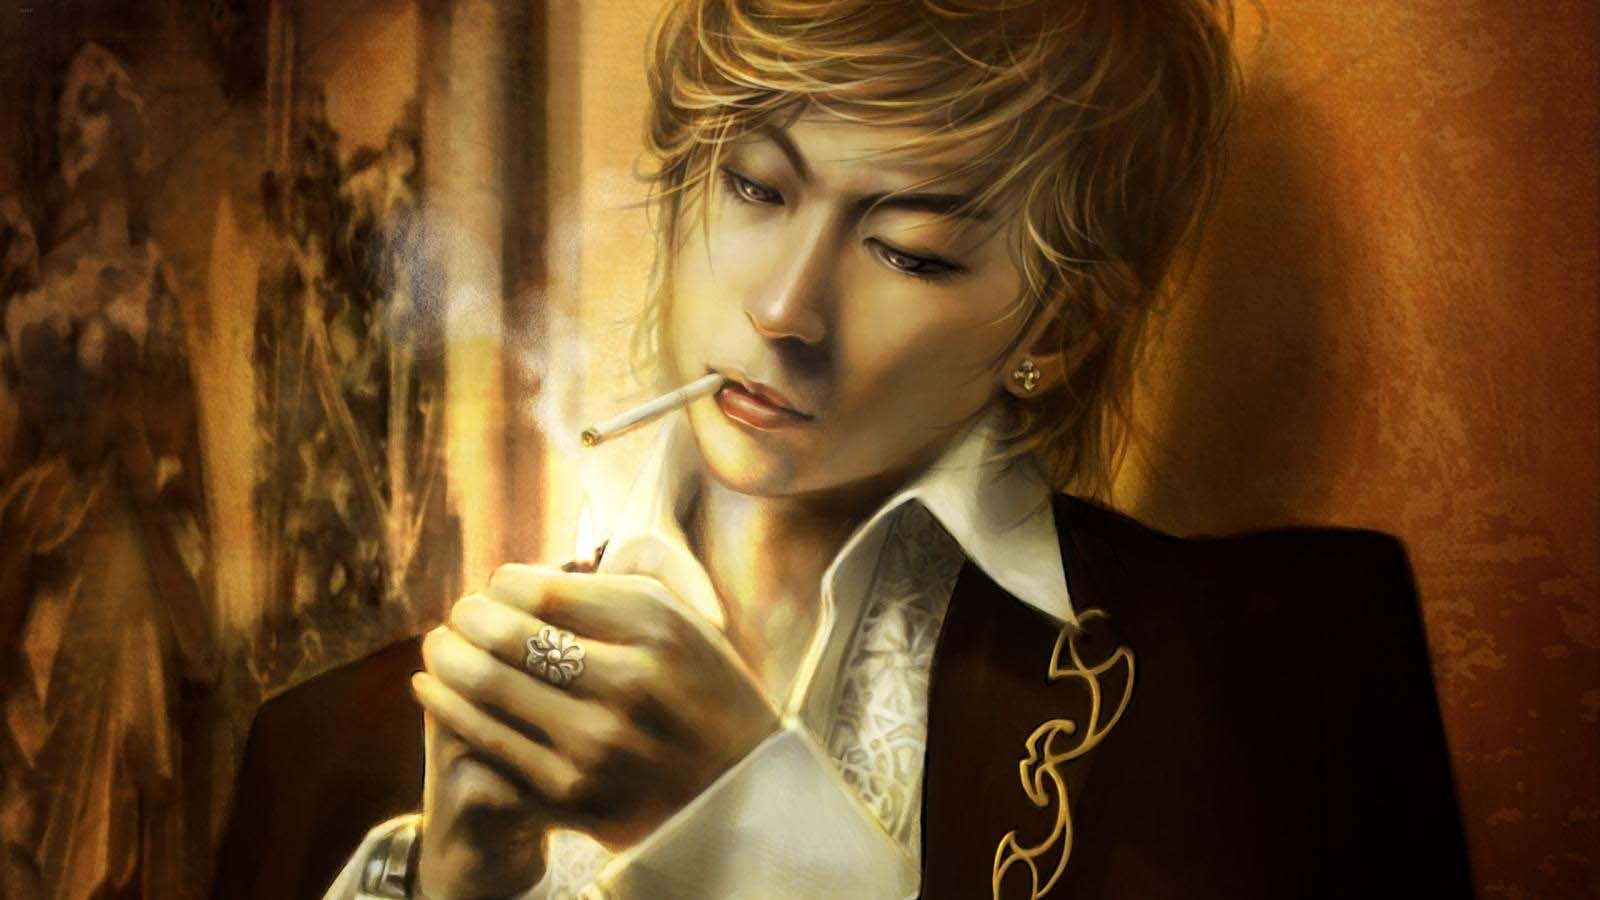 smoking-boy-latest-hd-wallpapers-free-download | hd wallpapers new